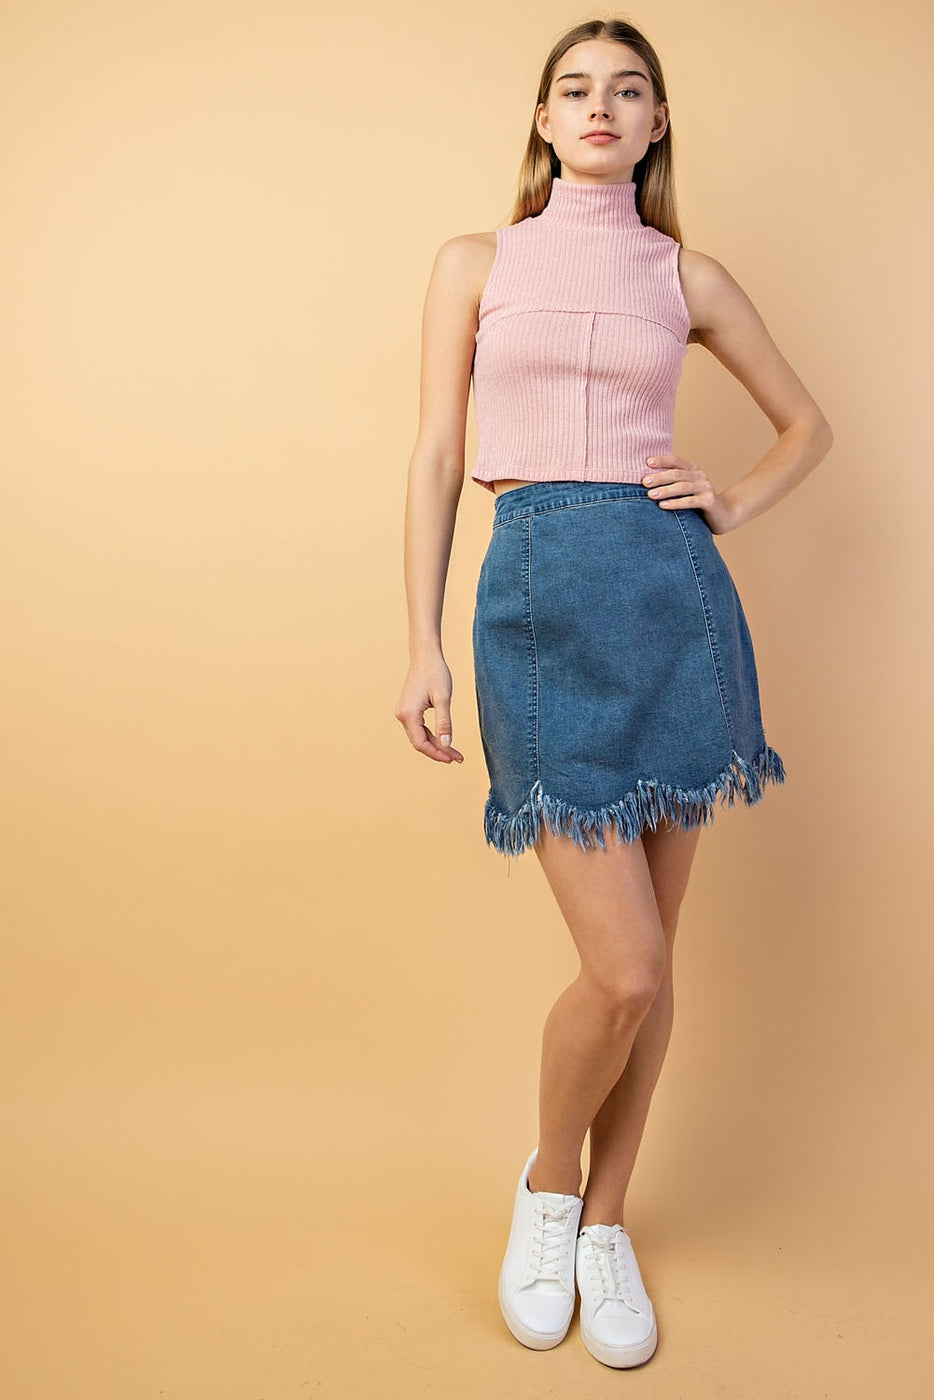 Turtleneck Sleeveless Top In Pink Siin Bees